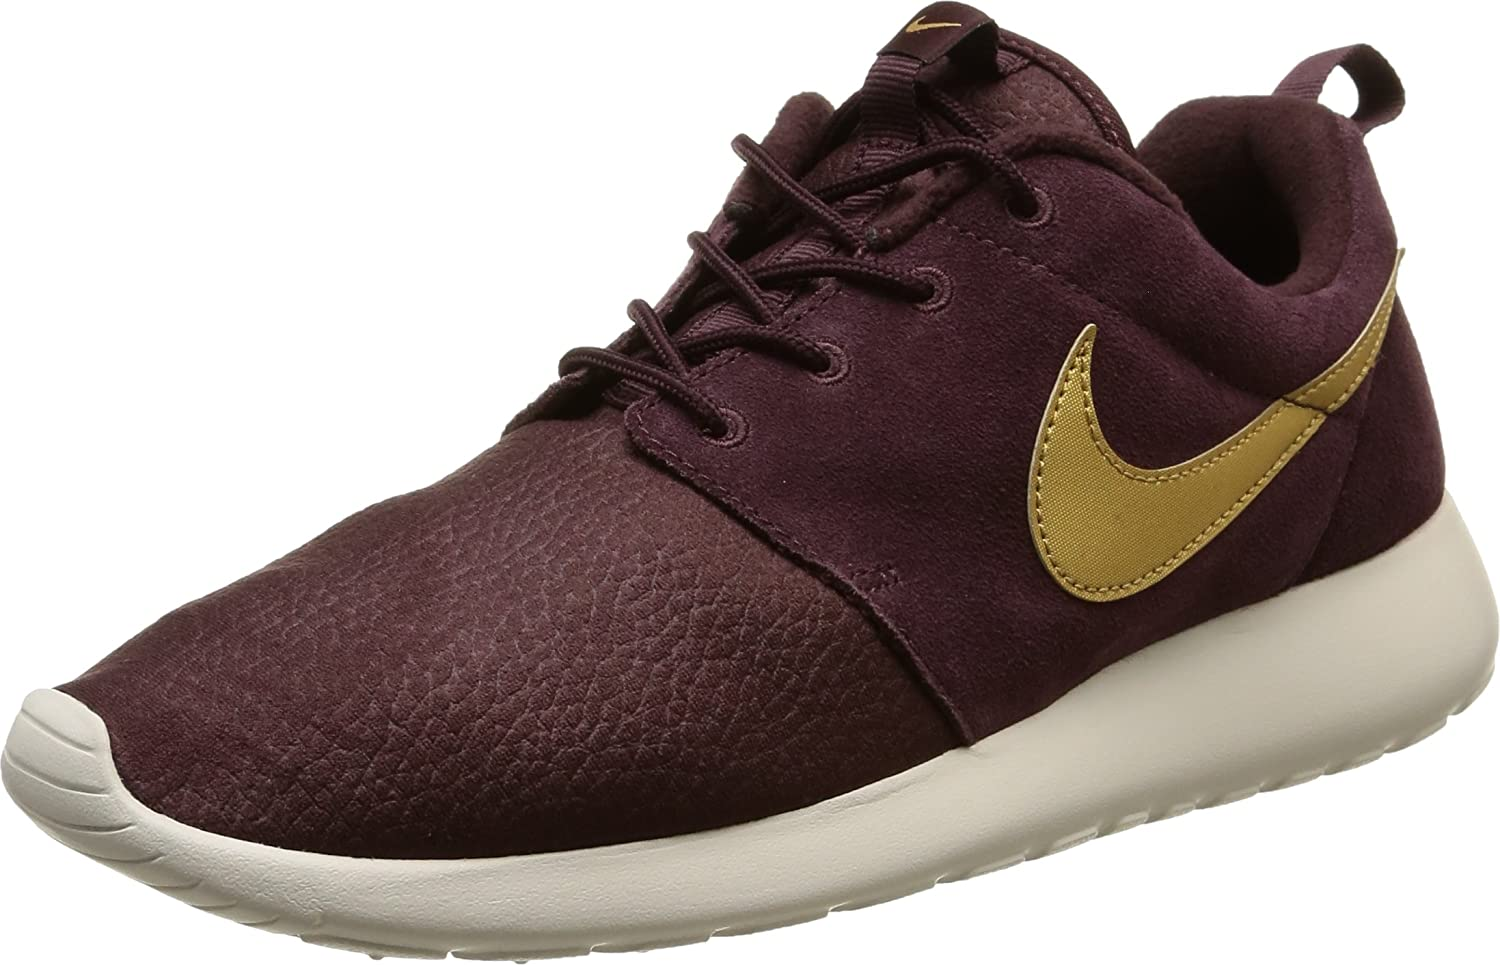 Nike Roshe One Suede, Men's Sports shoes